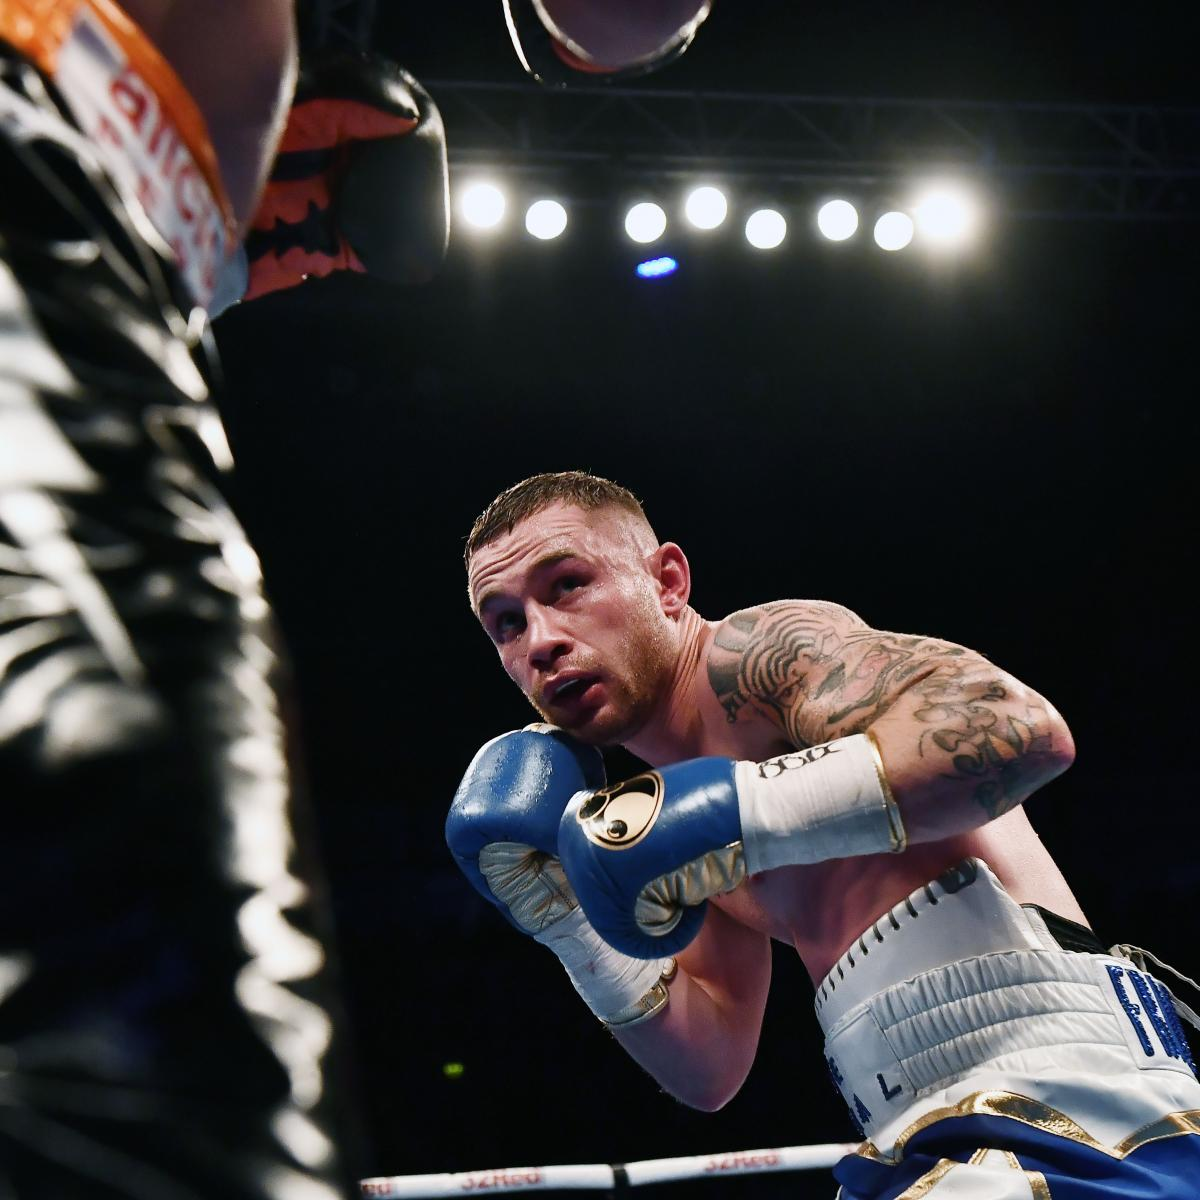 Ryan Burnett Loses to Nonito Donaire After Retiring with Back Injury